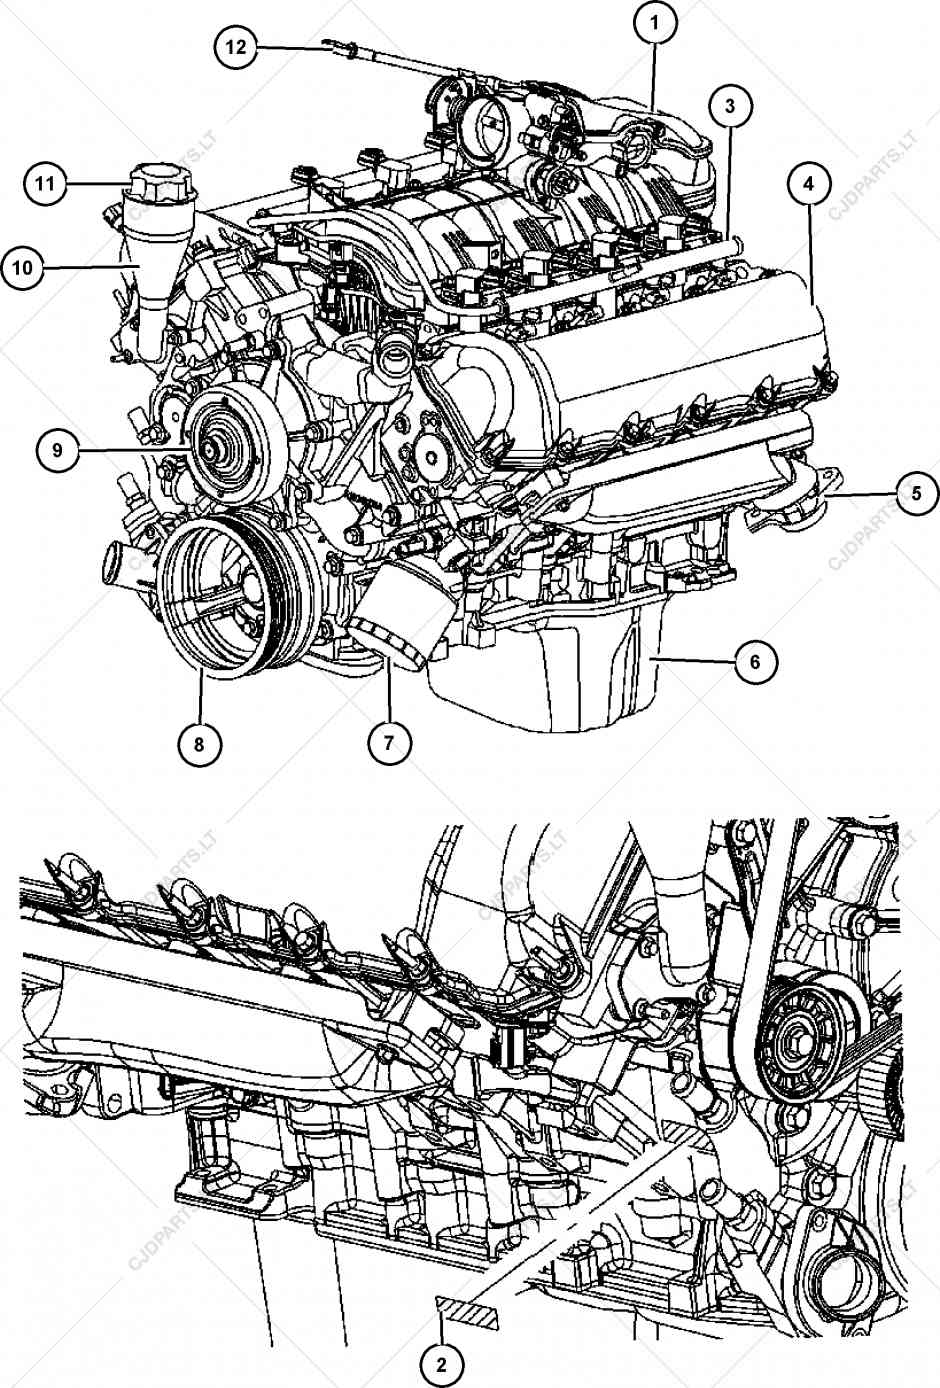 Jeep 4 7 Engine Diagram - Wiring Diagram Replace path-notice -  path-notice.miramontiseo.it | Wk Hemi Engine Compartment Diagram |  | path-notice.miramontiseo.it